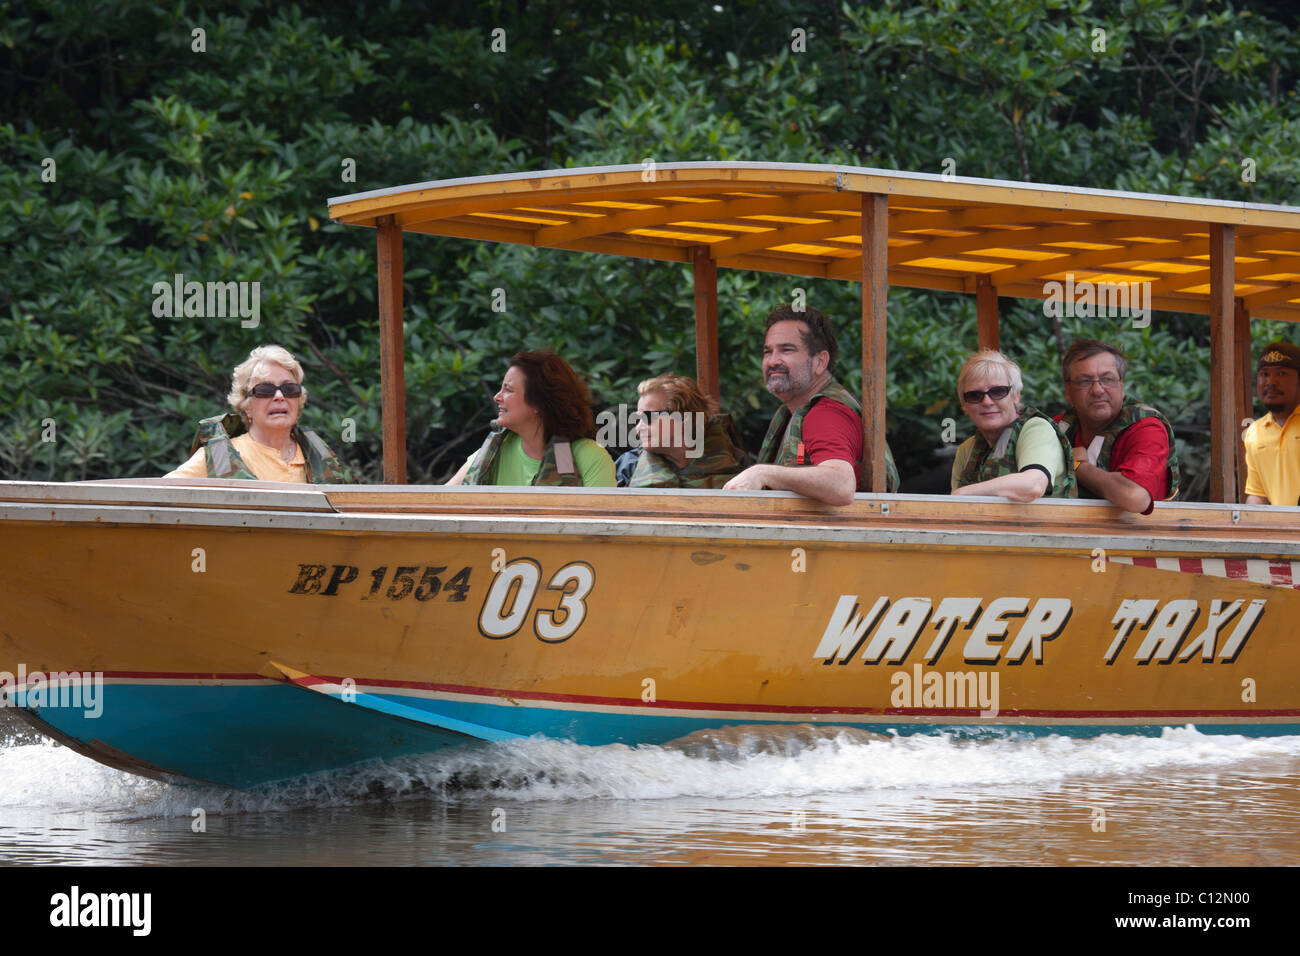 Water Taxi with Passengers on Brunei River - Stock Image